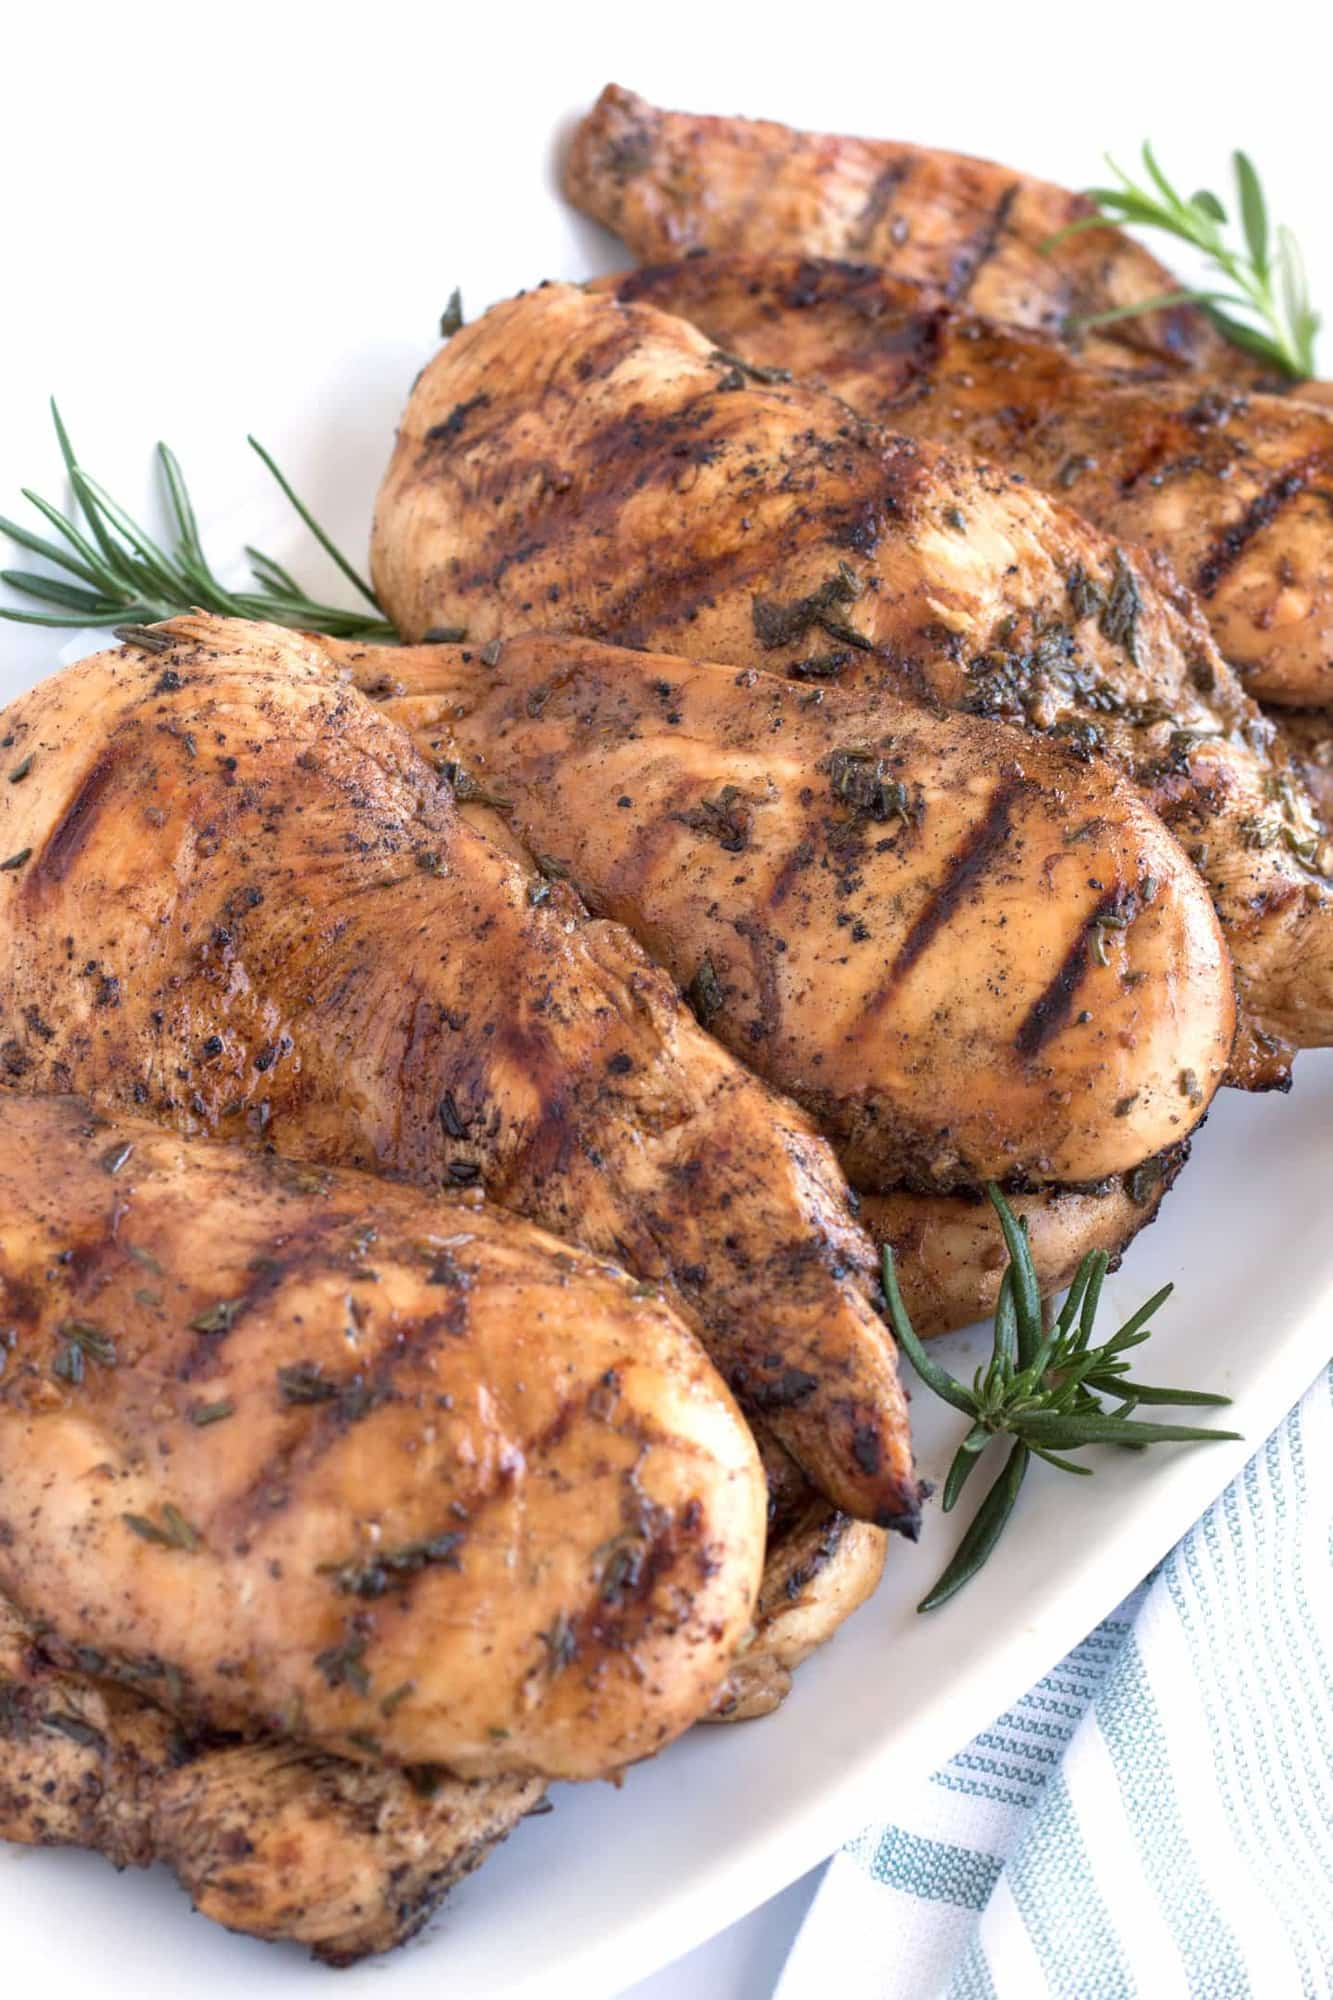 Full platter of grilled chicken with rosemary sprigs.